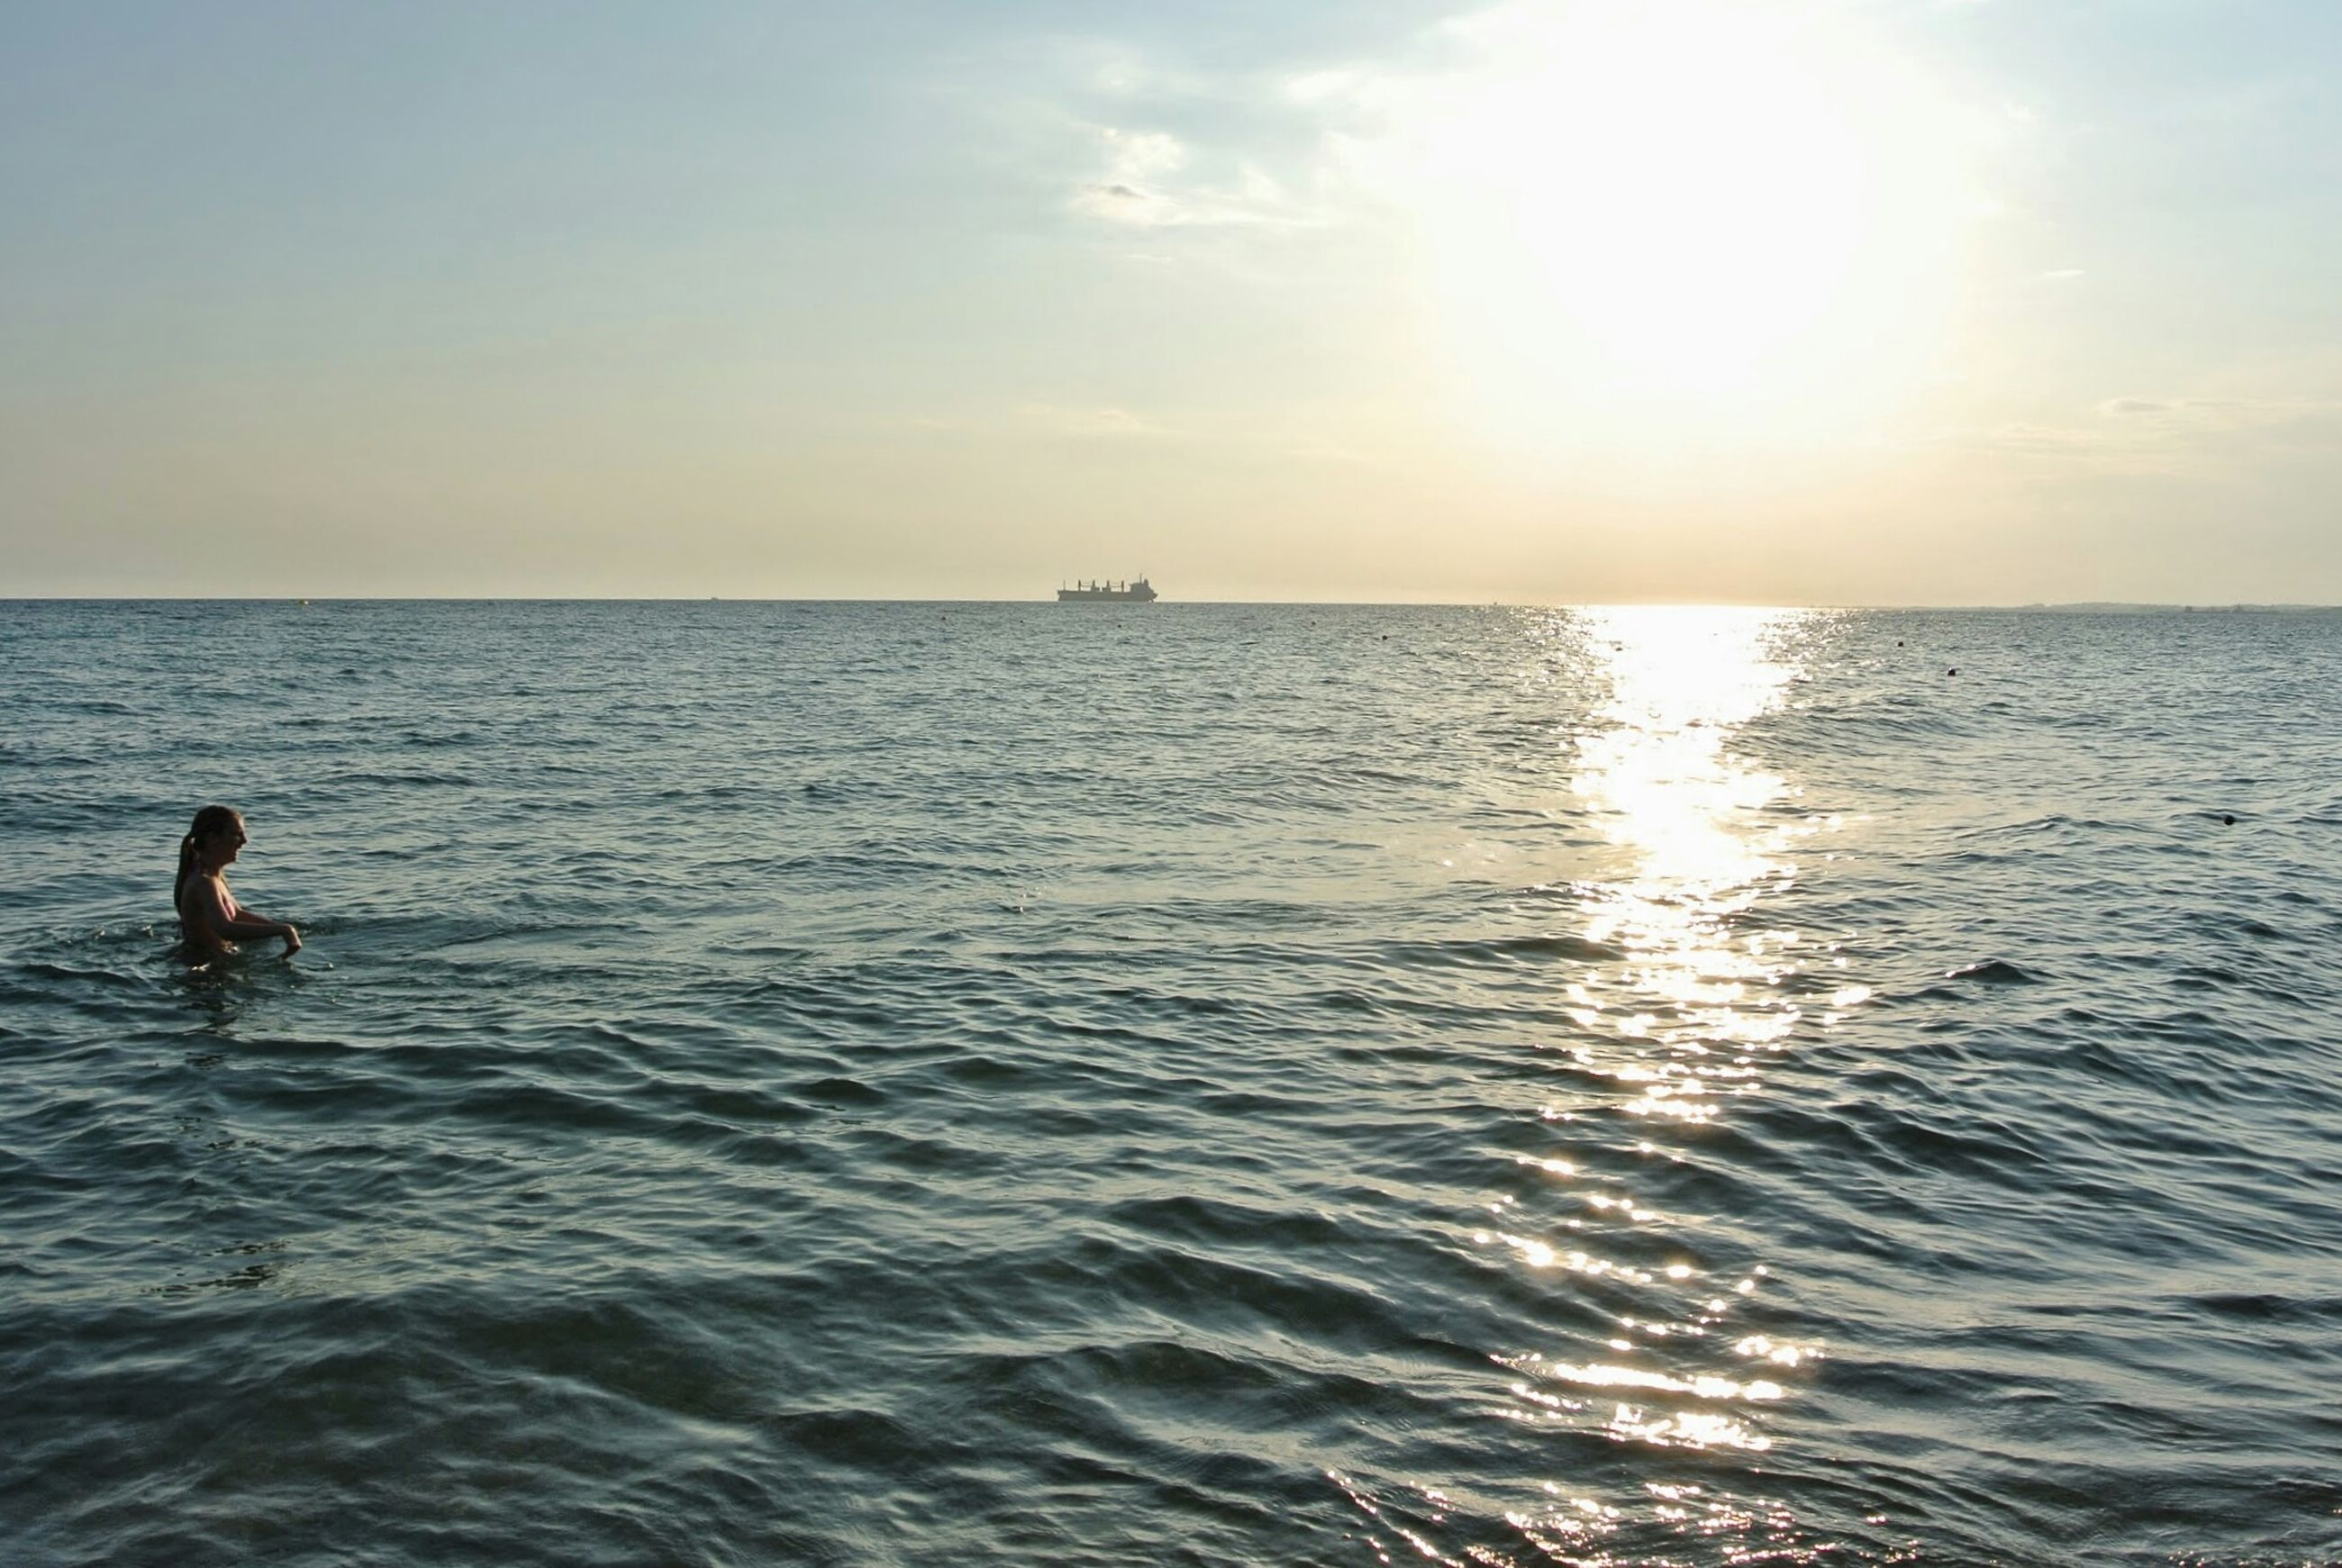 sea, water, horizon over water, leisure activity, waterfront, lifestyles, sun, sky, scenics, men, beauty in nature, rippled, tranquility, vacations, tranquil scene, sunlight, nature, seascape